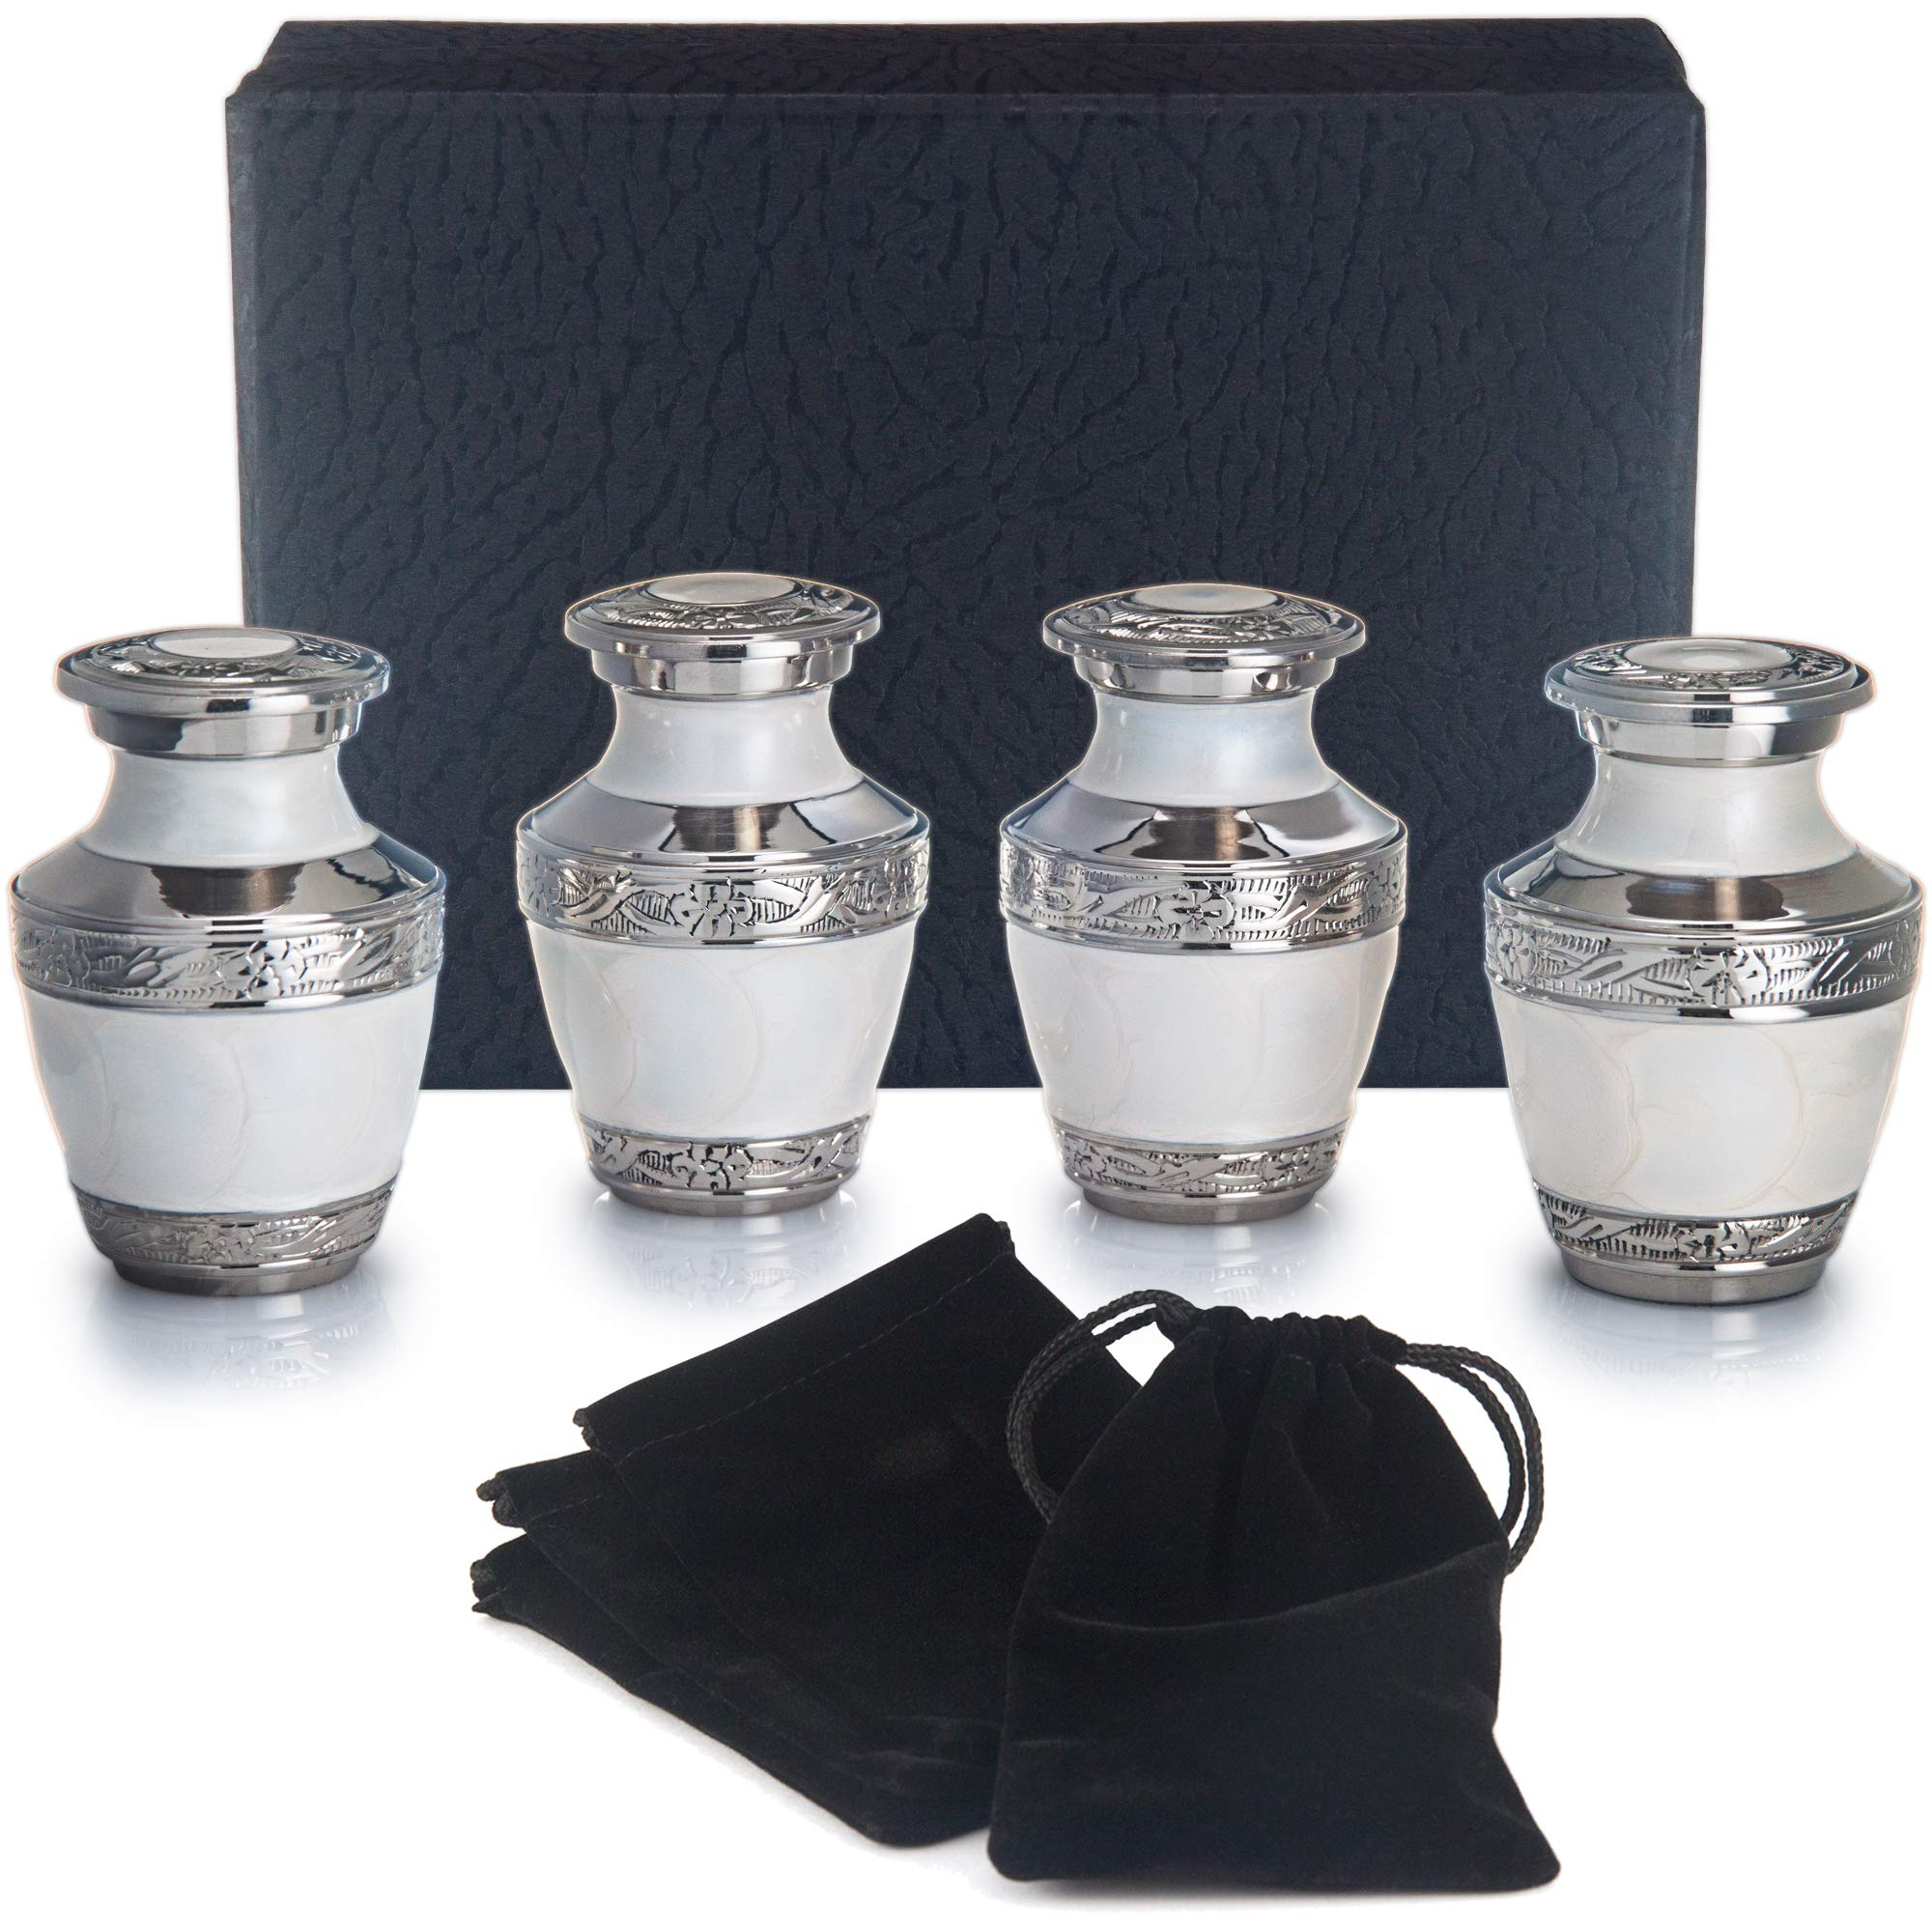 Adera Dreams Small Urns for Human Ashes Keepsake - Set of 4 in Pearl White - Mini Cremation Urns - Memorial Ashes Urn with Case, Velvet Pouch and Funnel - Miniature Burial Funeral Urns for Sharing Ash by Adera Dreams